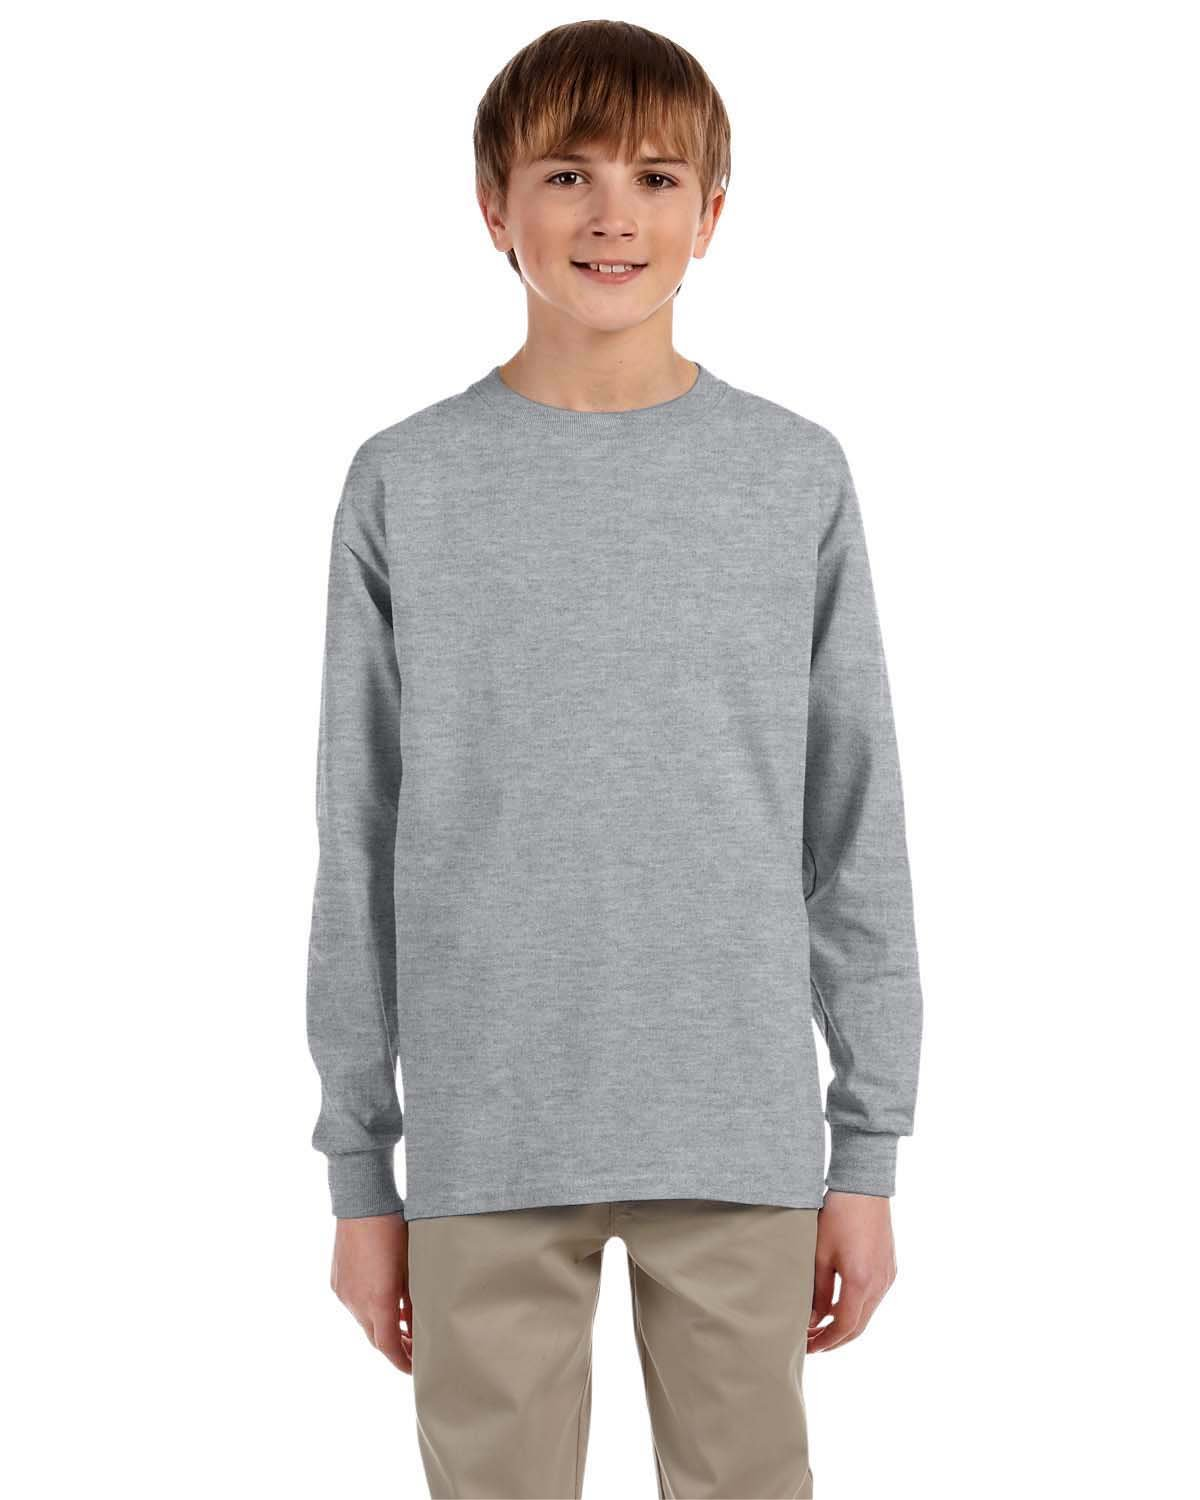 Jerzees Youth DRI-POWER® ACTIVE Long-Sleeve T-Shirt ATHLETIC HEATHER